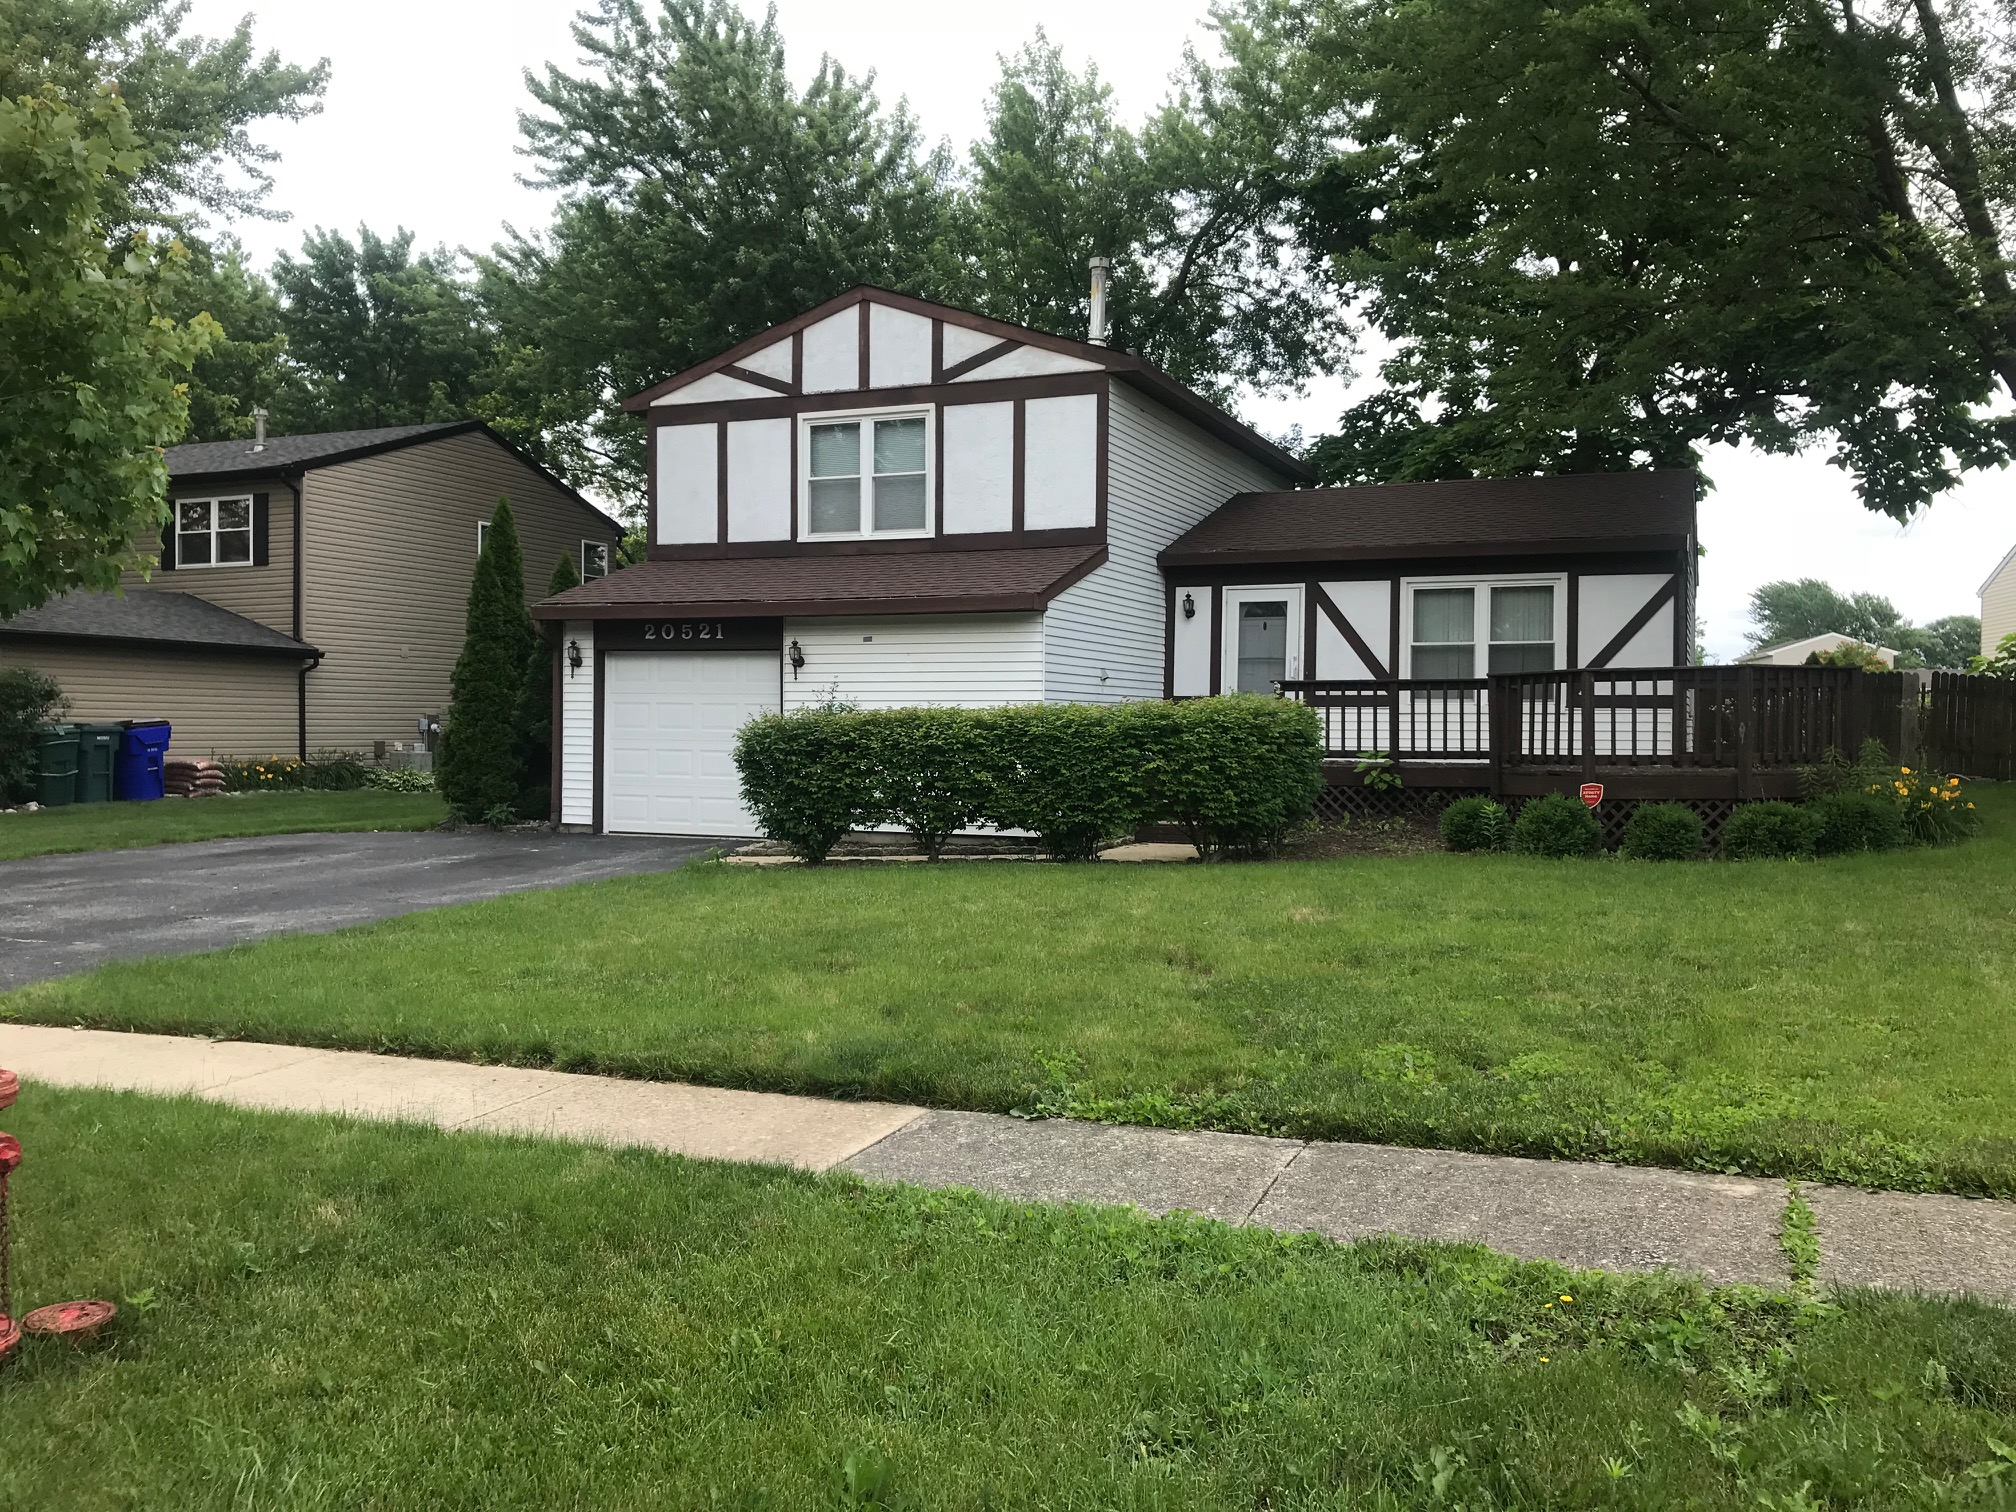 Photo of 20521 S. Driftwood Drive, Frankfort, IL, 60423